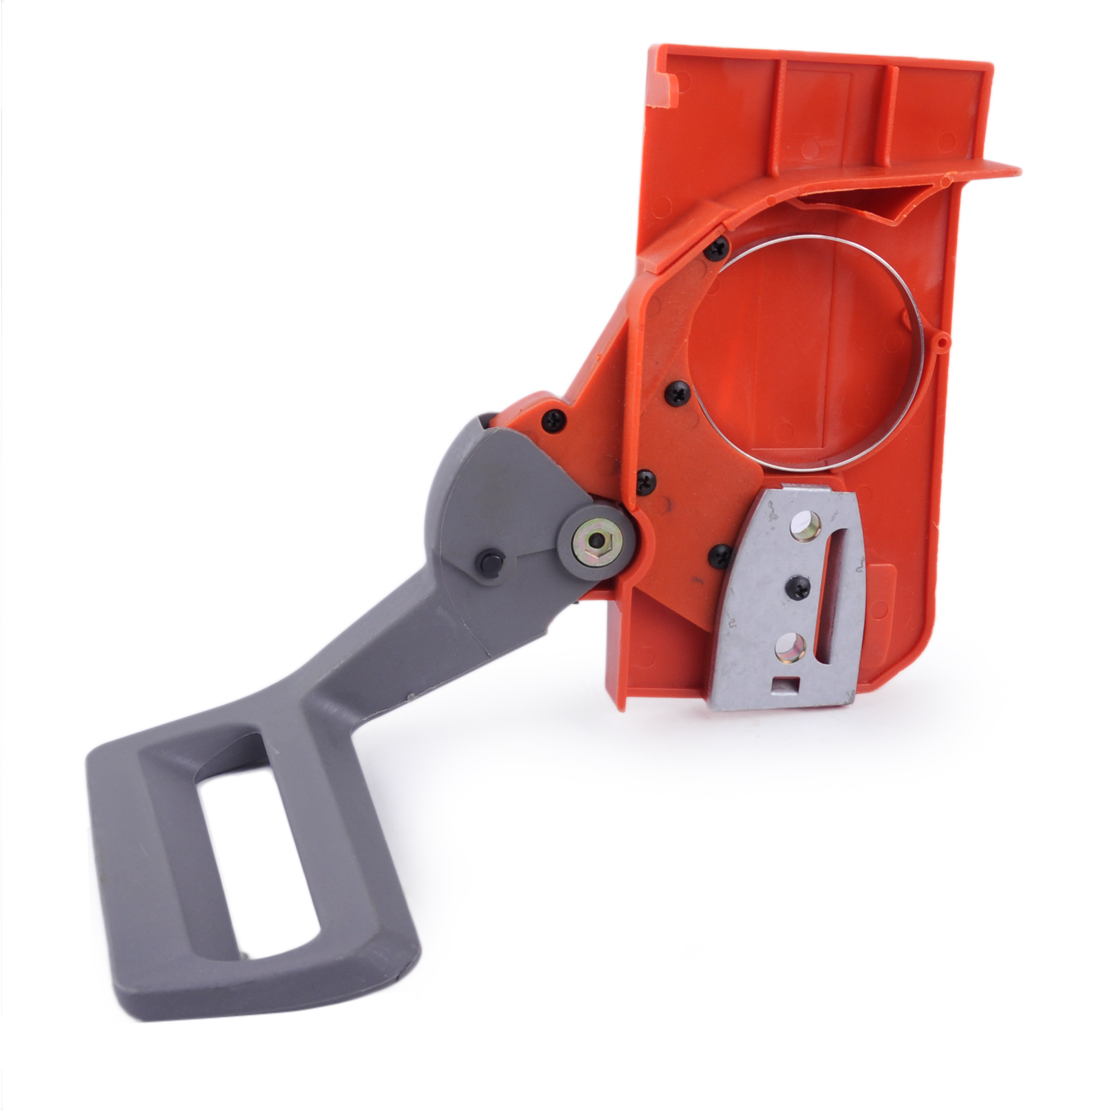 Tools : LETAOSK Plastic Chain Brake Side Cover Assembly Fit for Husqvarna 50 51 55 Chainsaws Accessories